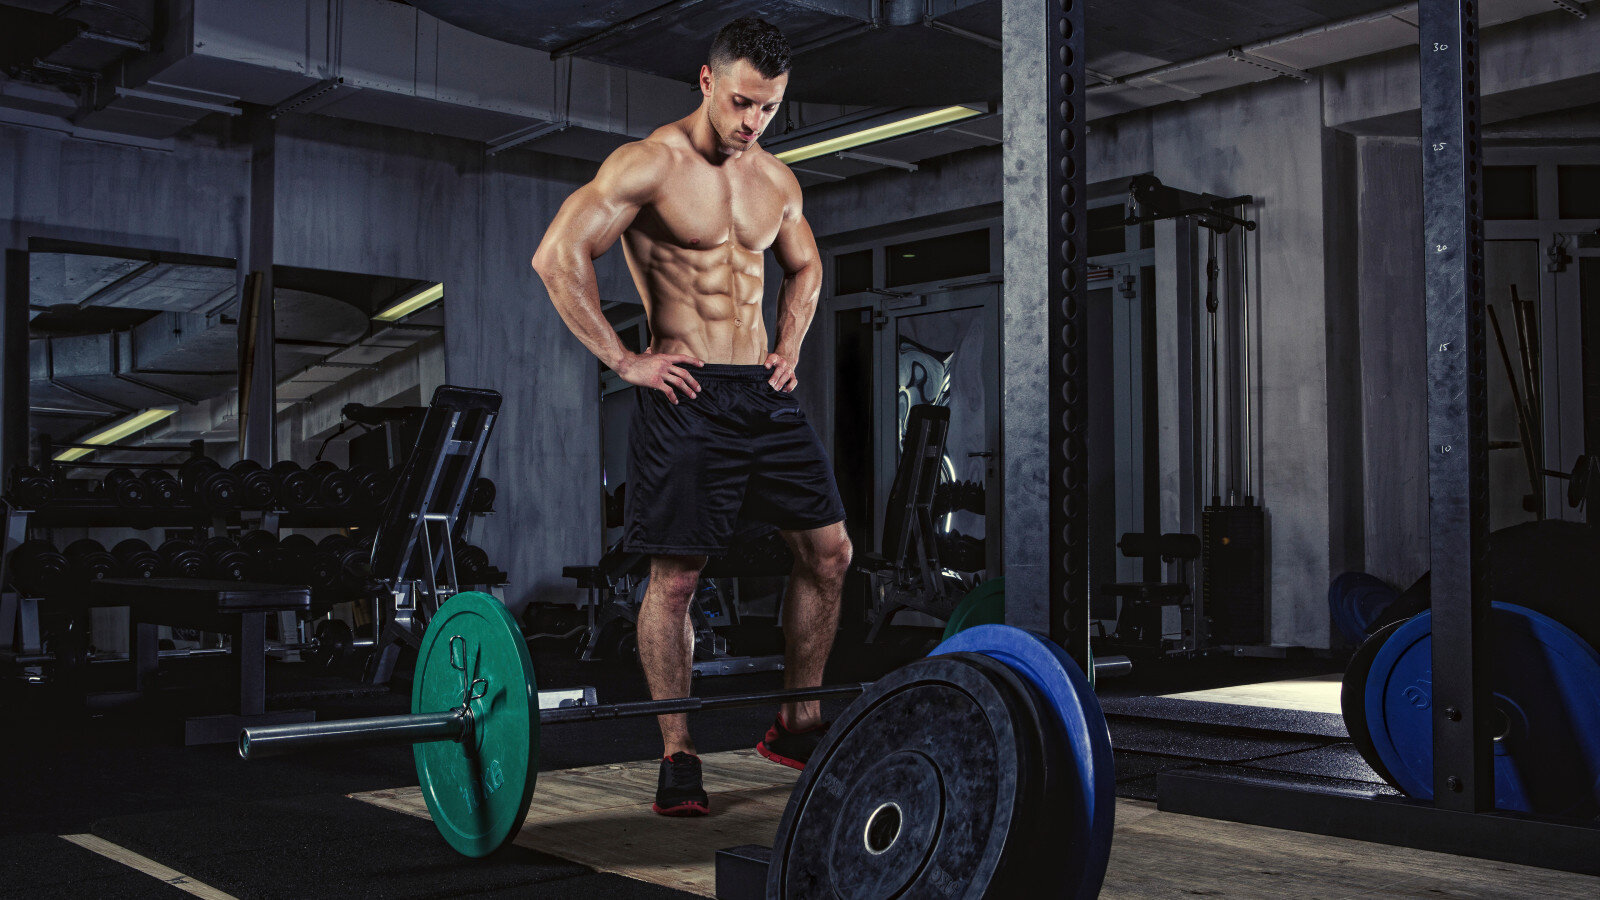 Physical athlete preparing for weightlifting